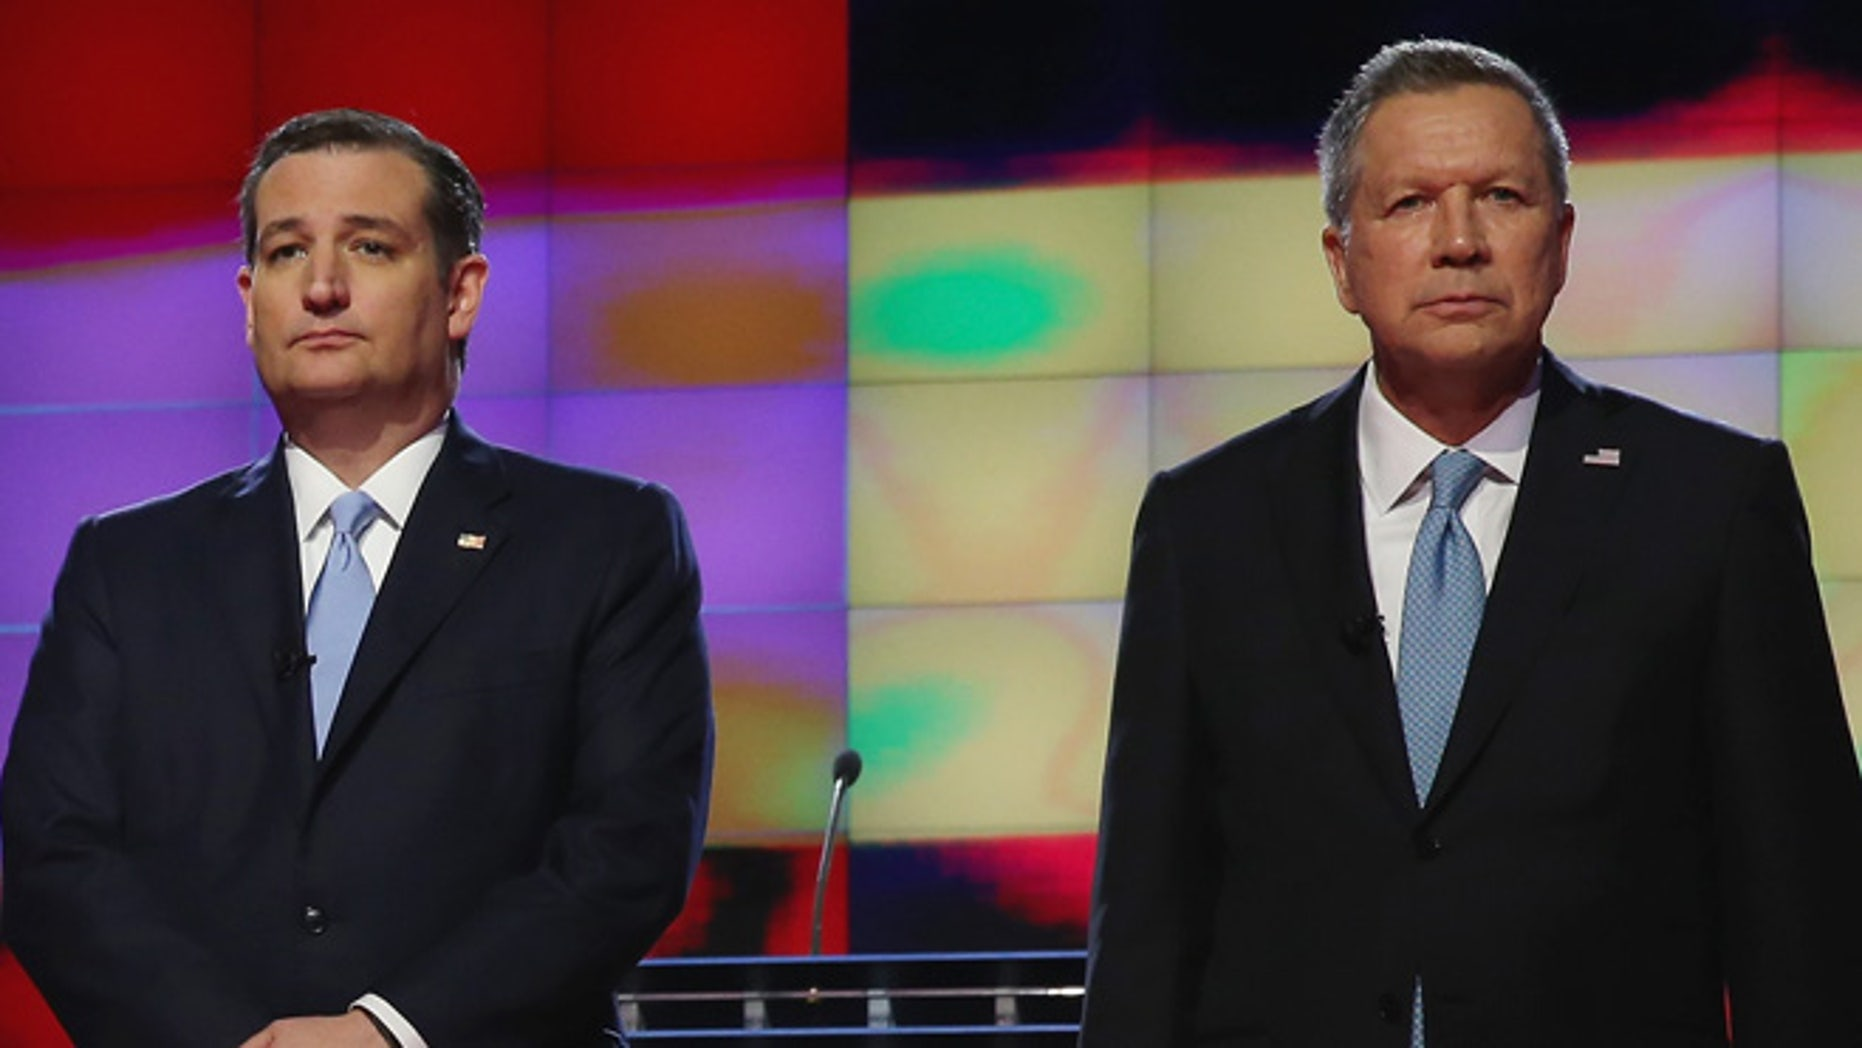 CORAL GABLES, FL - MARCH 10:  Republican presidential candidates, Sen. Marco Rubio (R-FL), Donald Trump, Sen. Ted Cruz (R-TX), and Ohio Gov. John Kasich debate during the CNN, Salem Media Group, The Washington Times Republican Presidential Primary Debate on the campus of the University of Miami on March 10, 2016 in Coral Gables, Florida. The candidates continue to campaign before the March 15th Florida primary.  (Photo by Joe Raedle/Getty Images)